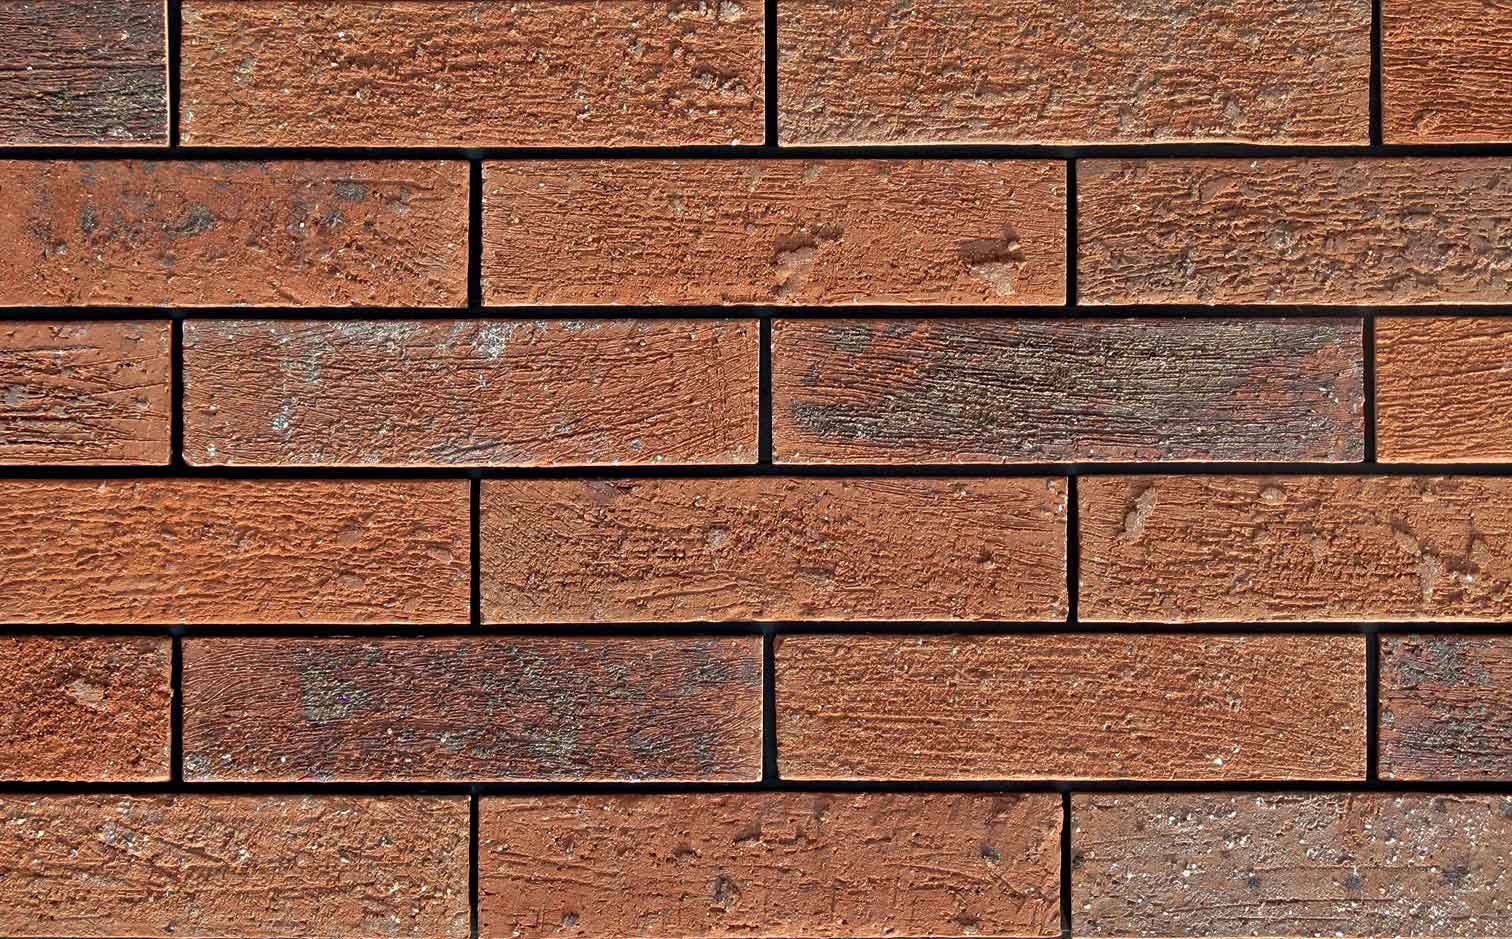 WXS6321 Clay Tile|Wall Brick Zephyr Texture